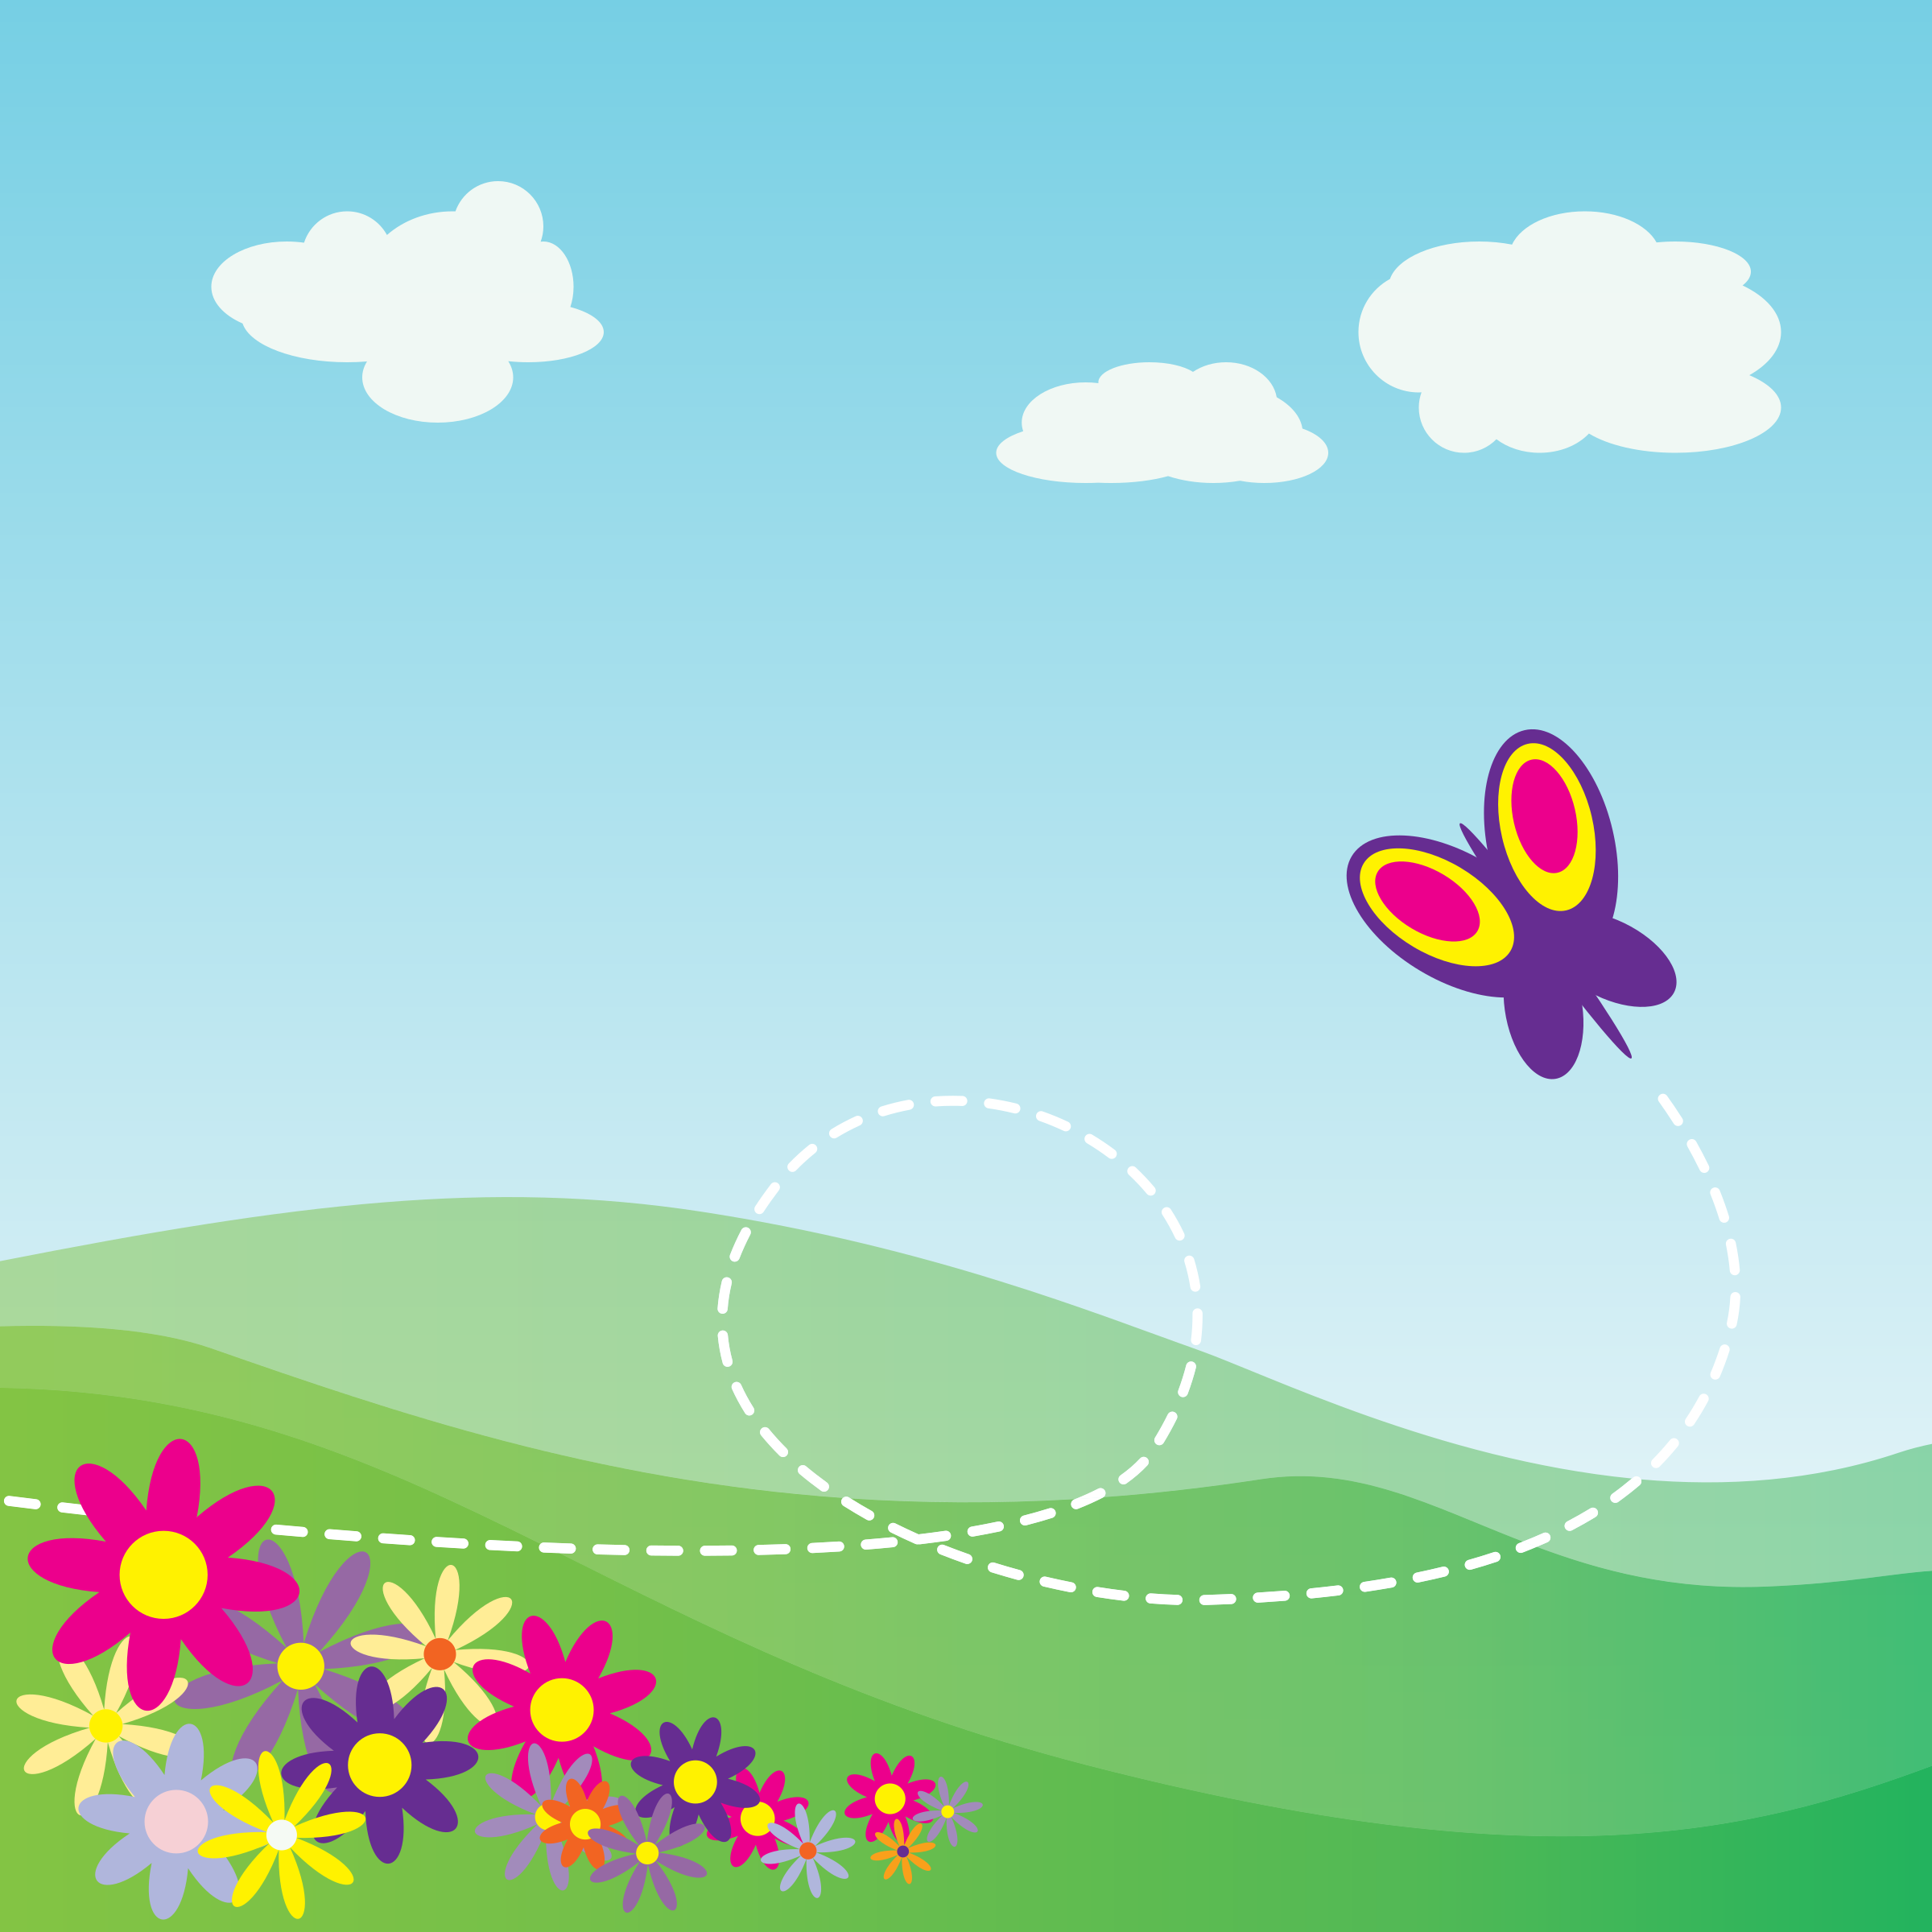 Cartoon Hillside with Butterfly and Flowers by StudioFibonacci